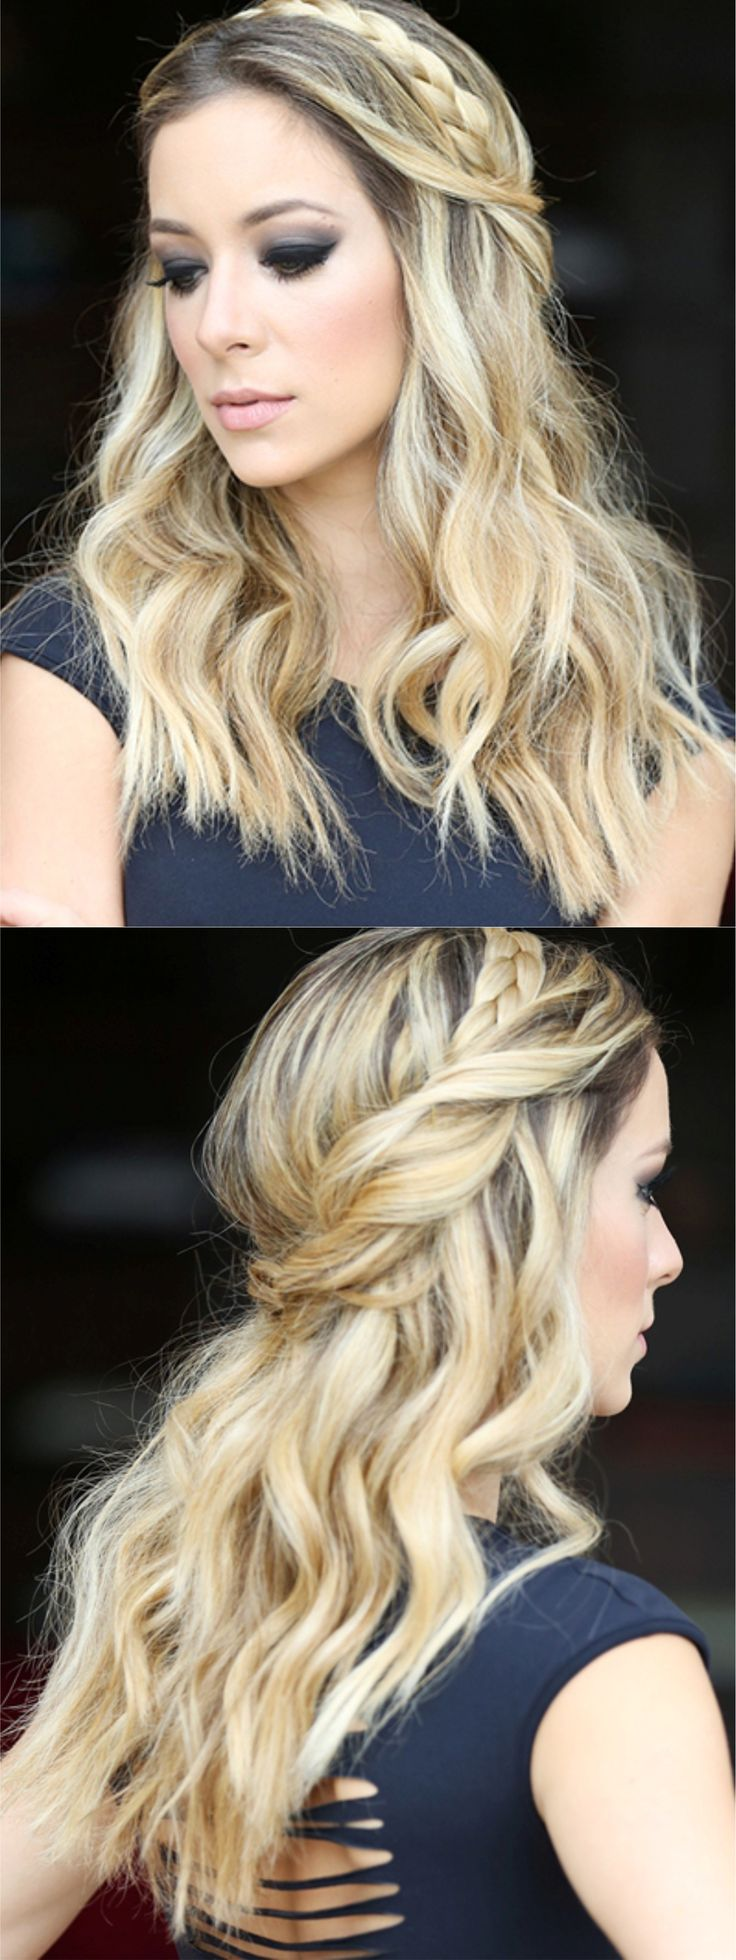 smokey eye and braided half up half down hairstyle  ~ we ❤ this! moncheriprom.com  #promhairstyles